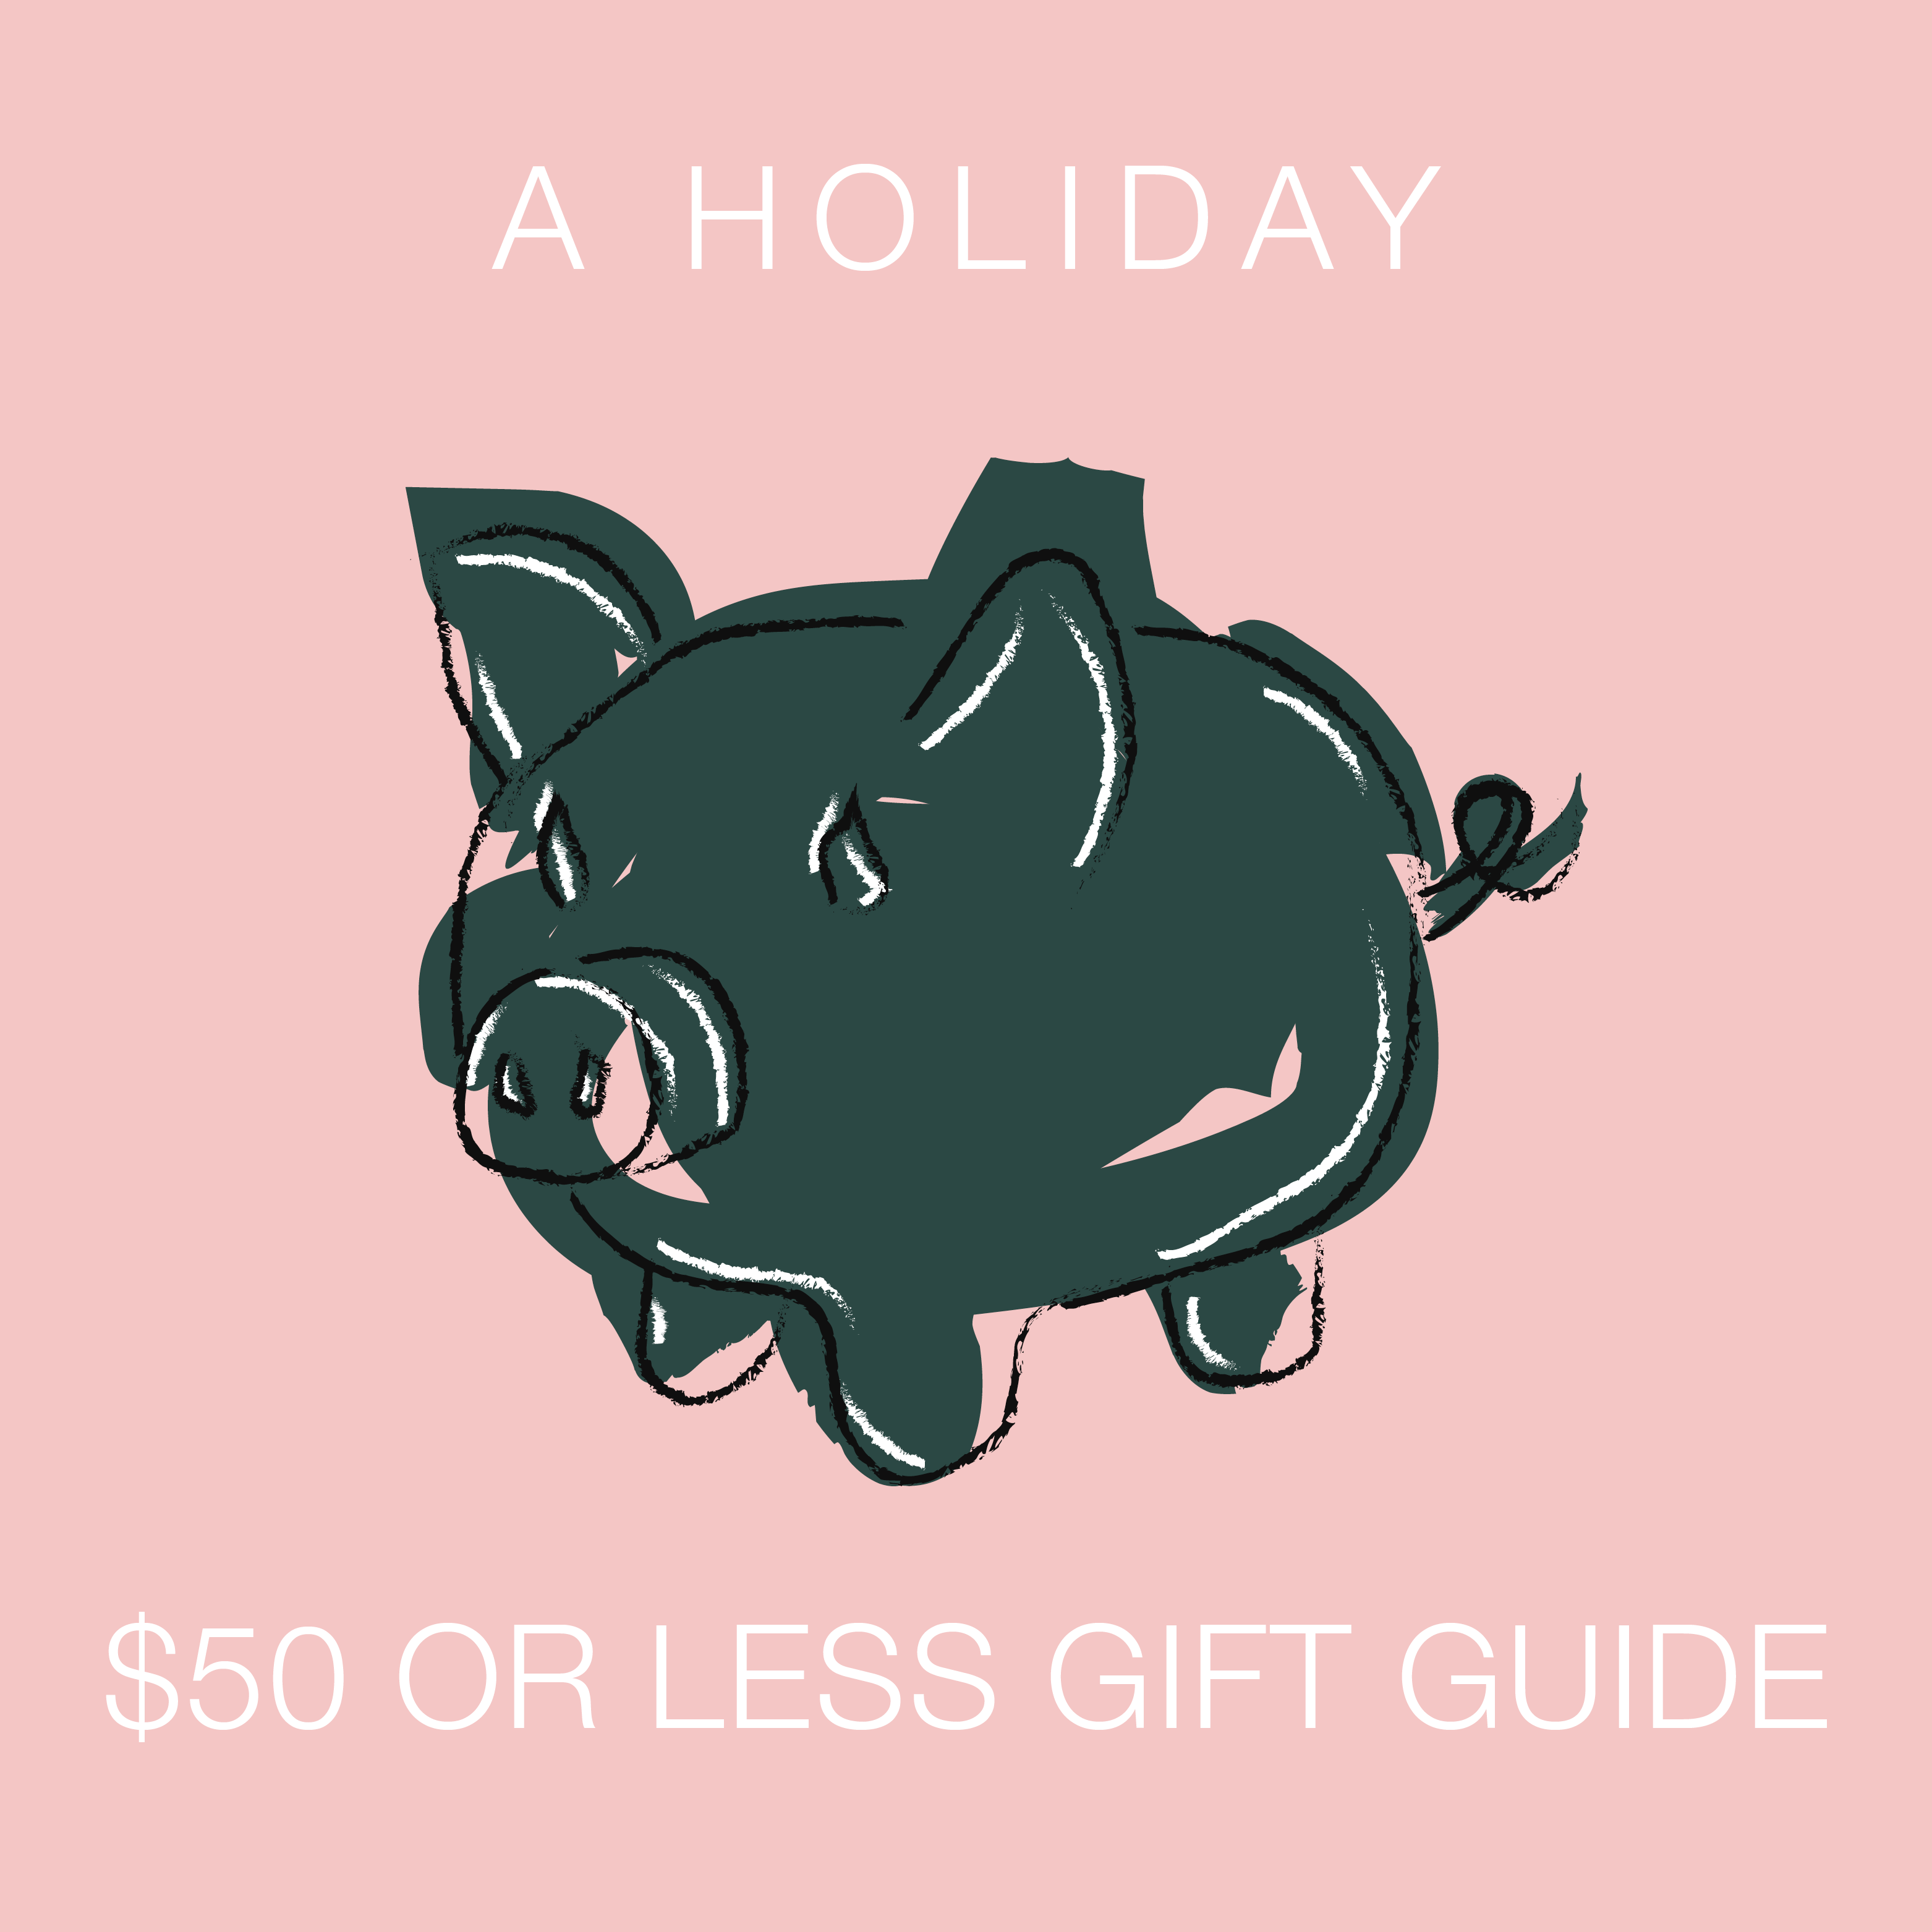 Gifts on a budget